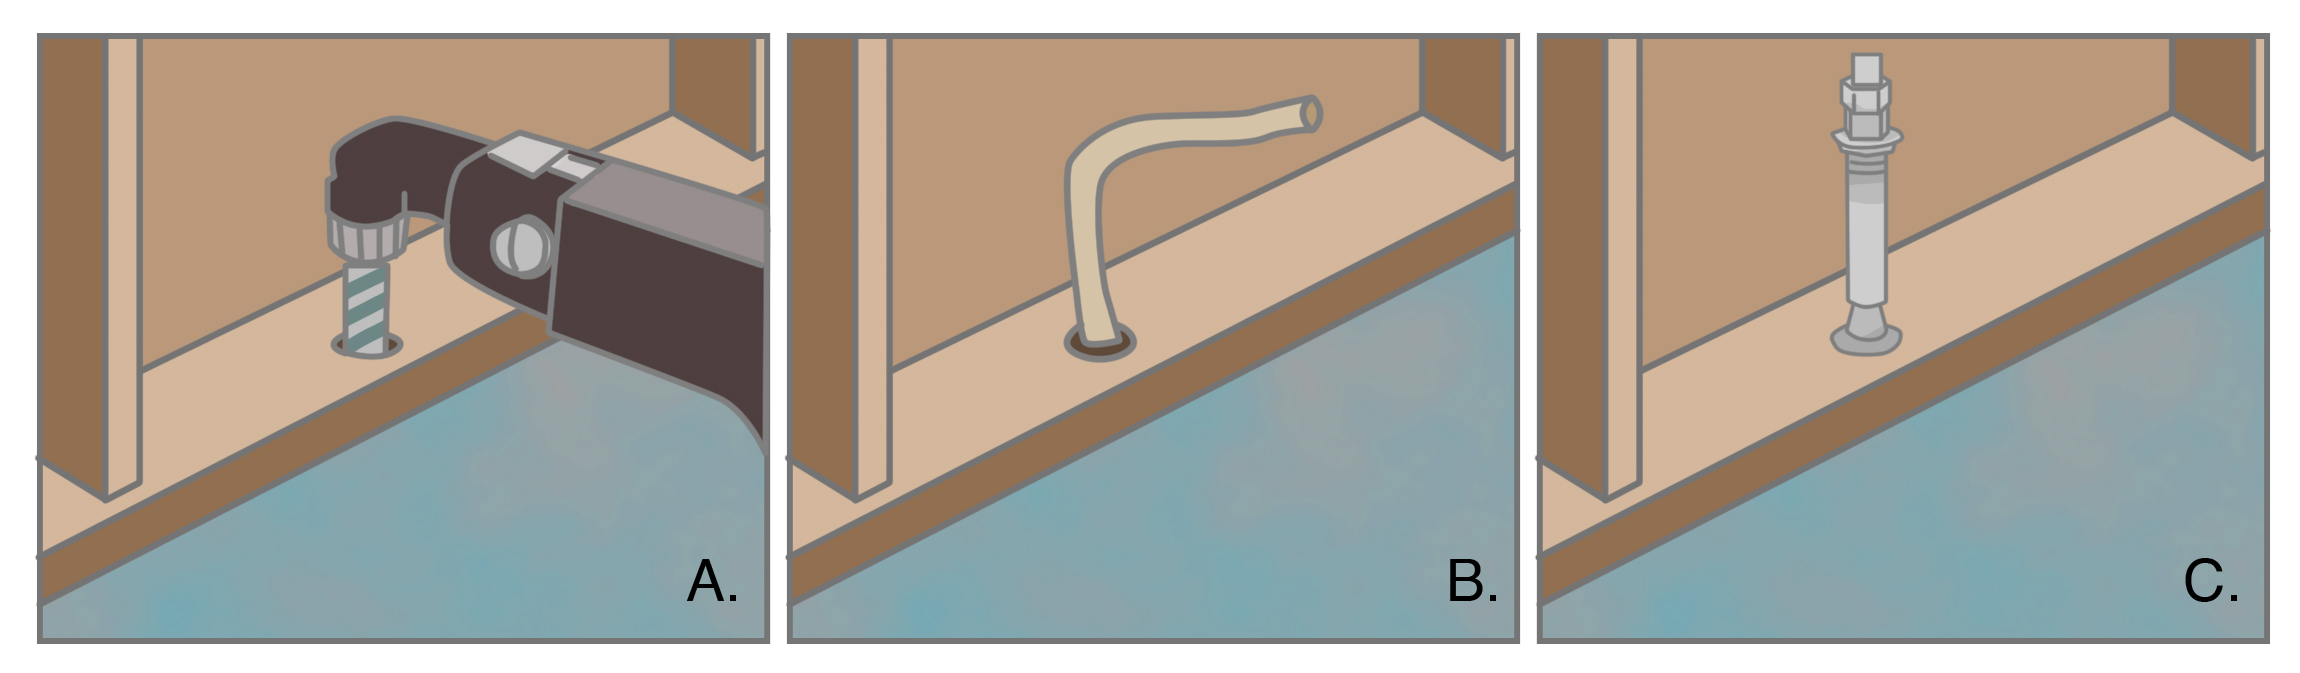 Bolt cripple wall (pony wall) to foundation through mudsill, using a sill bolt